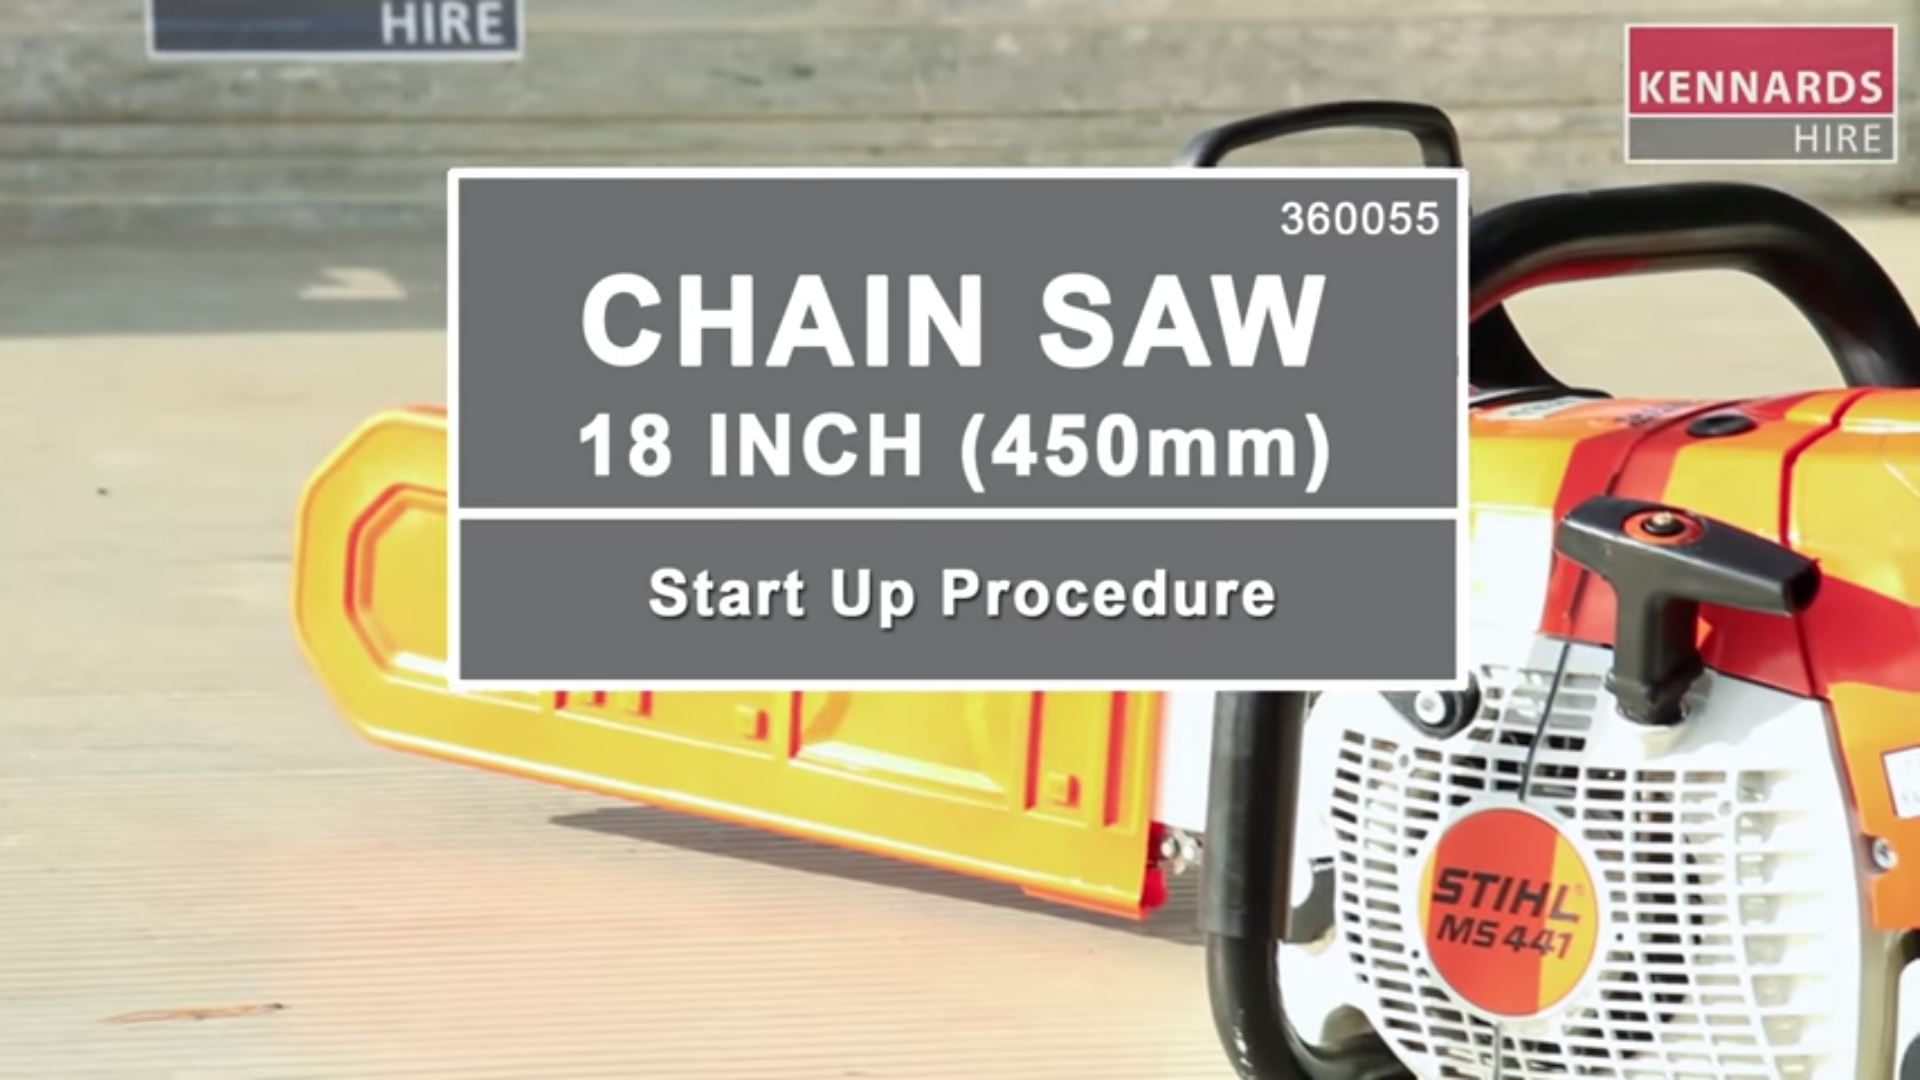 How to start up a Chainsaw